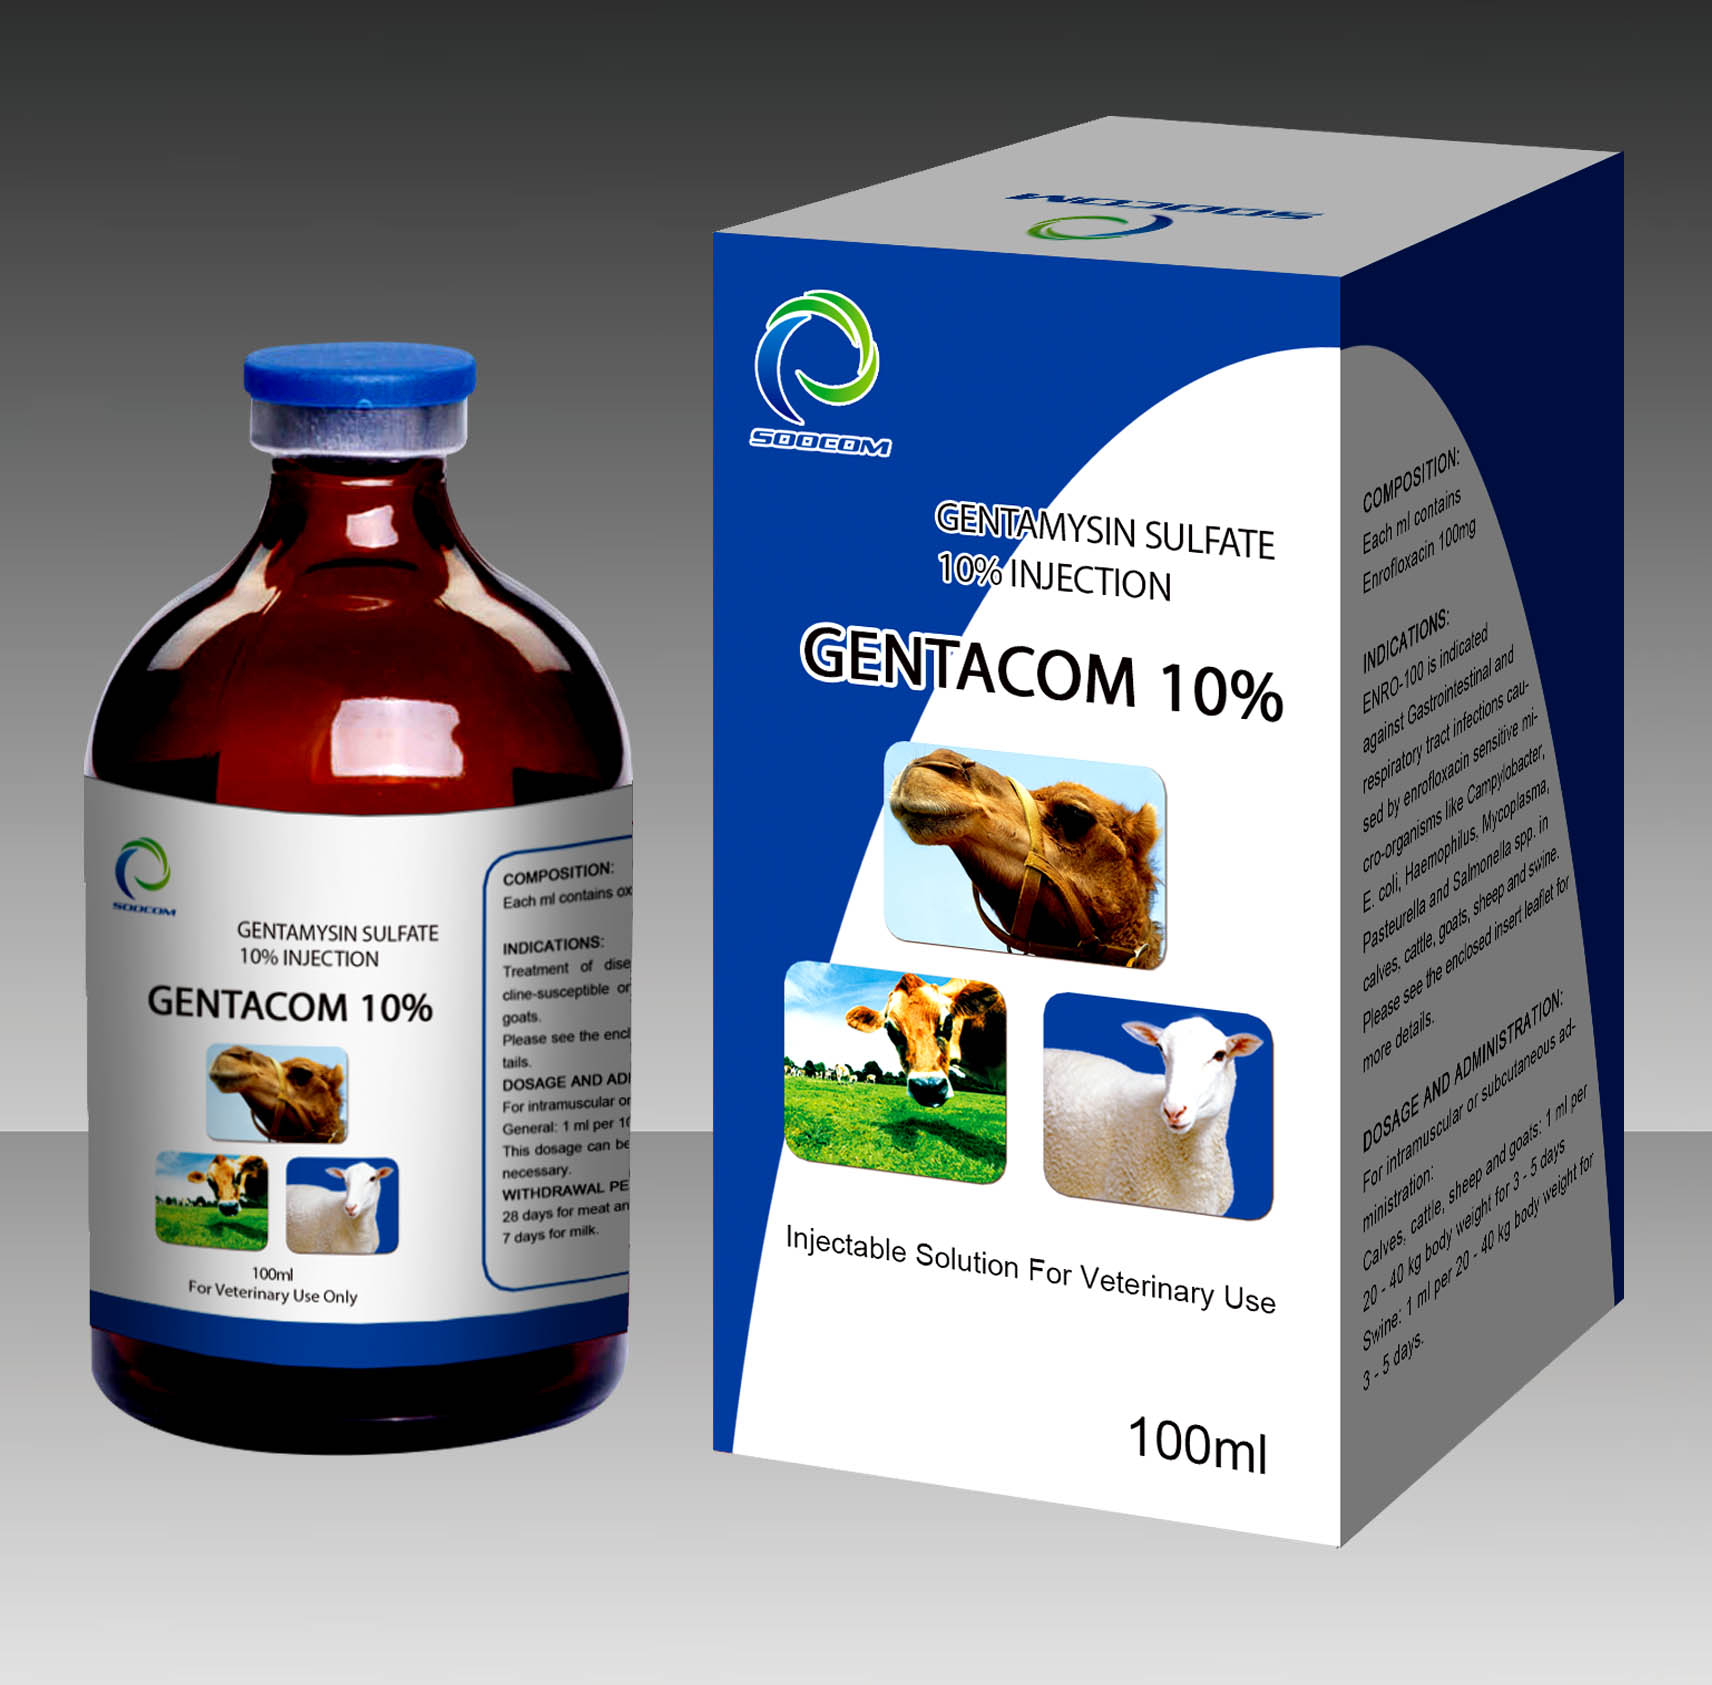 GENTACOM 10% GENTAMYSIN SULFATE 10% INJECTION